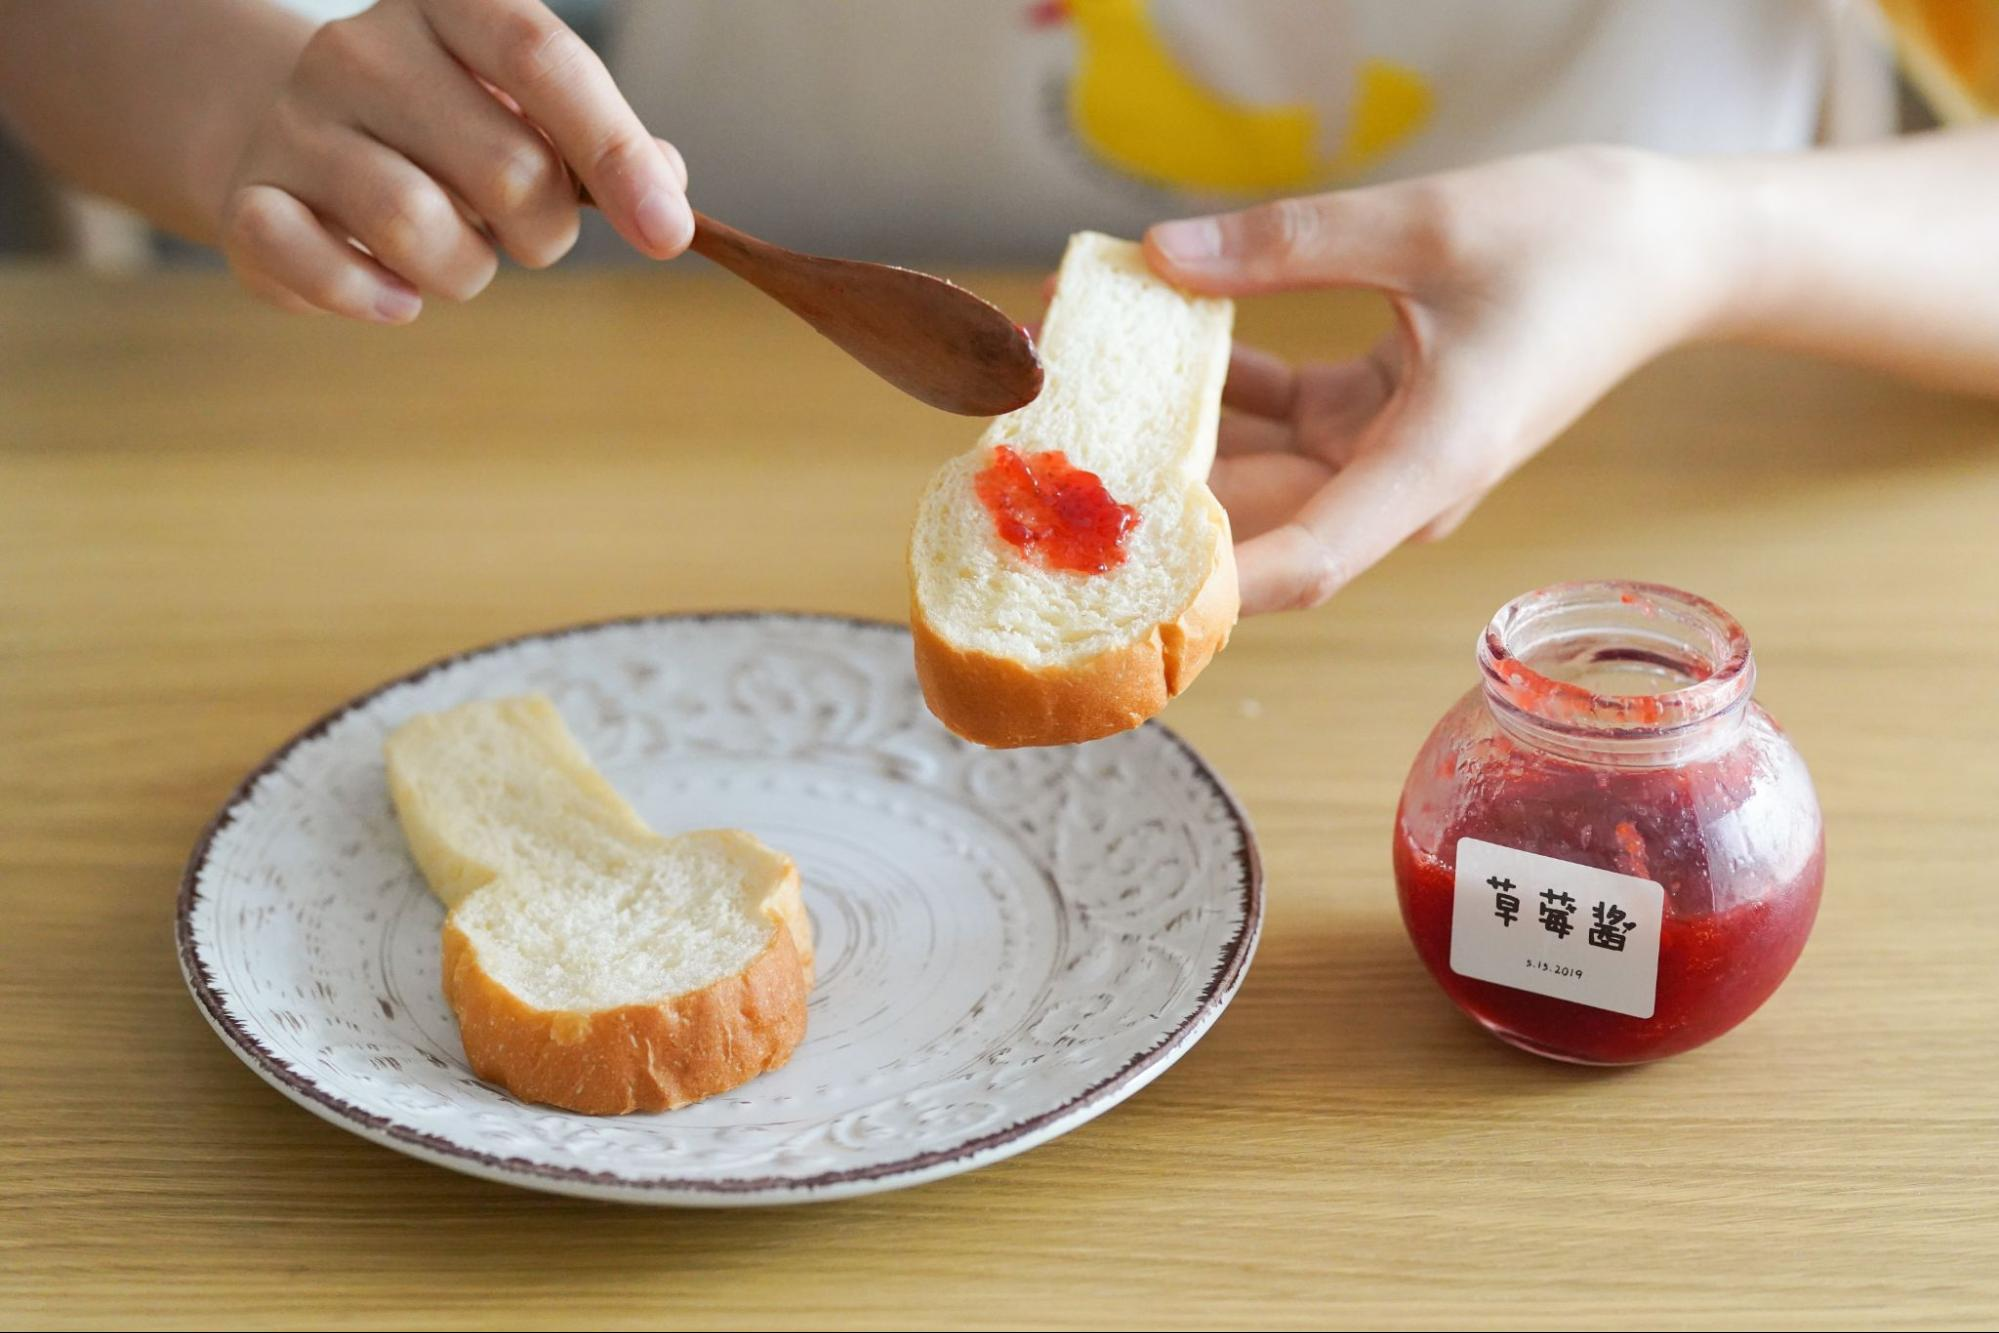 person-spreading-homemade-jam-on-bread